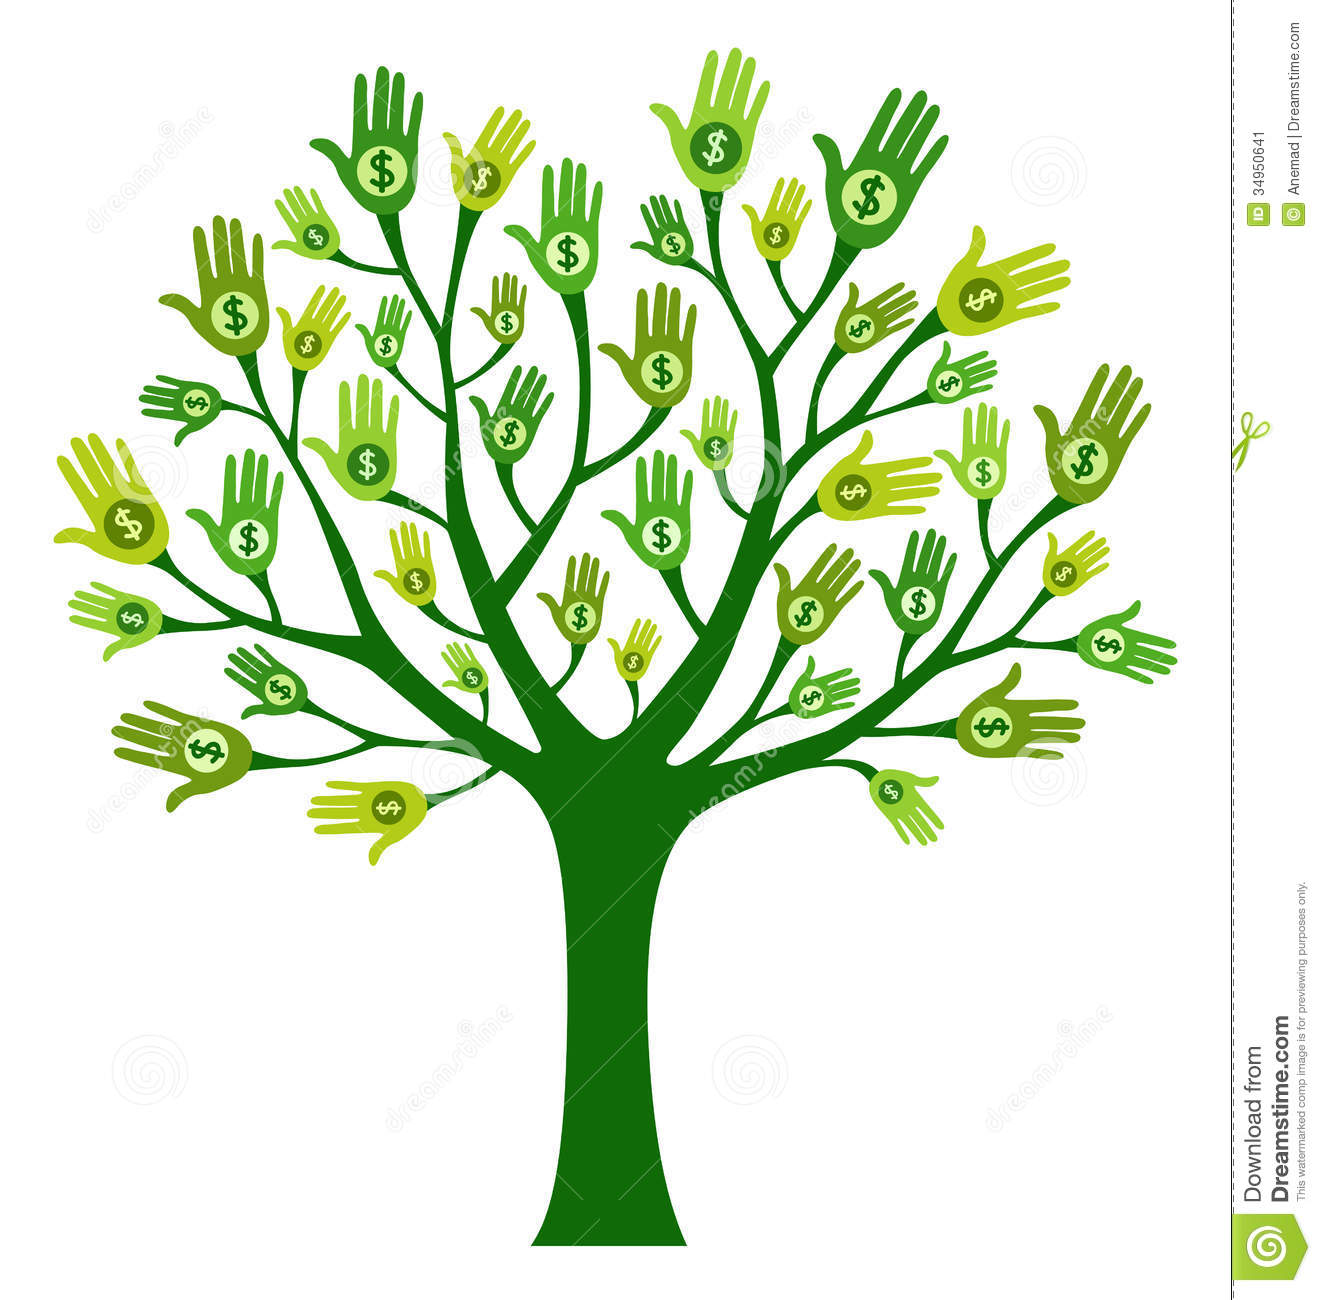 money tree clipart wwwpixsharkcom images galleries